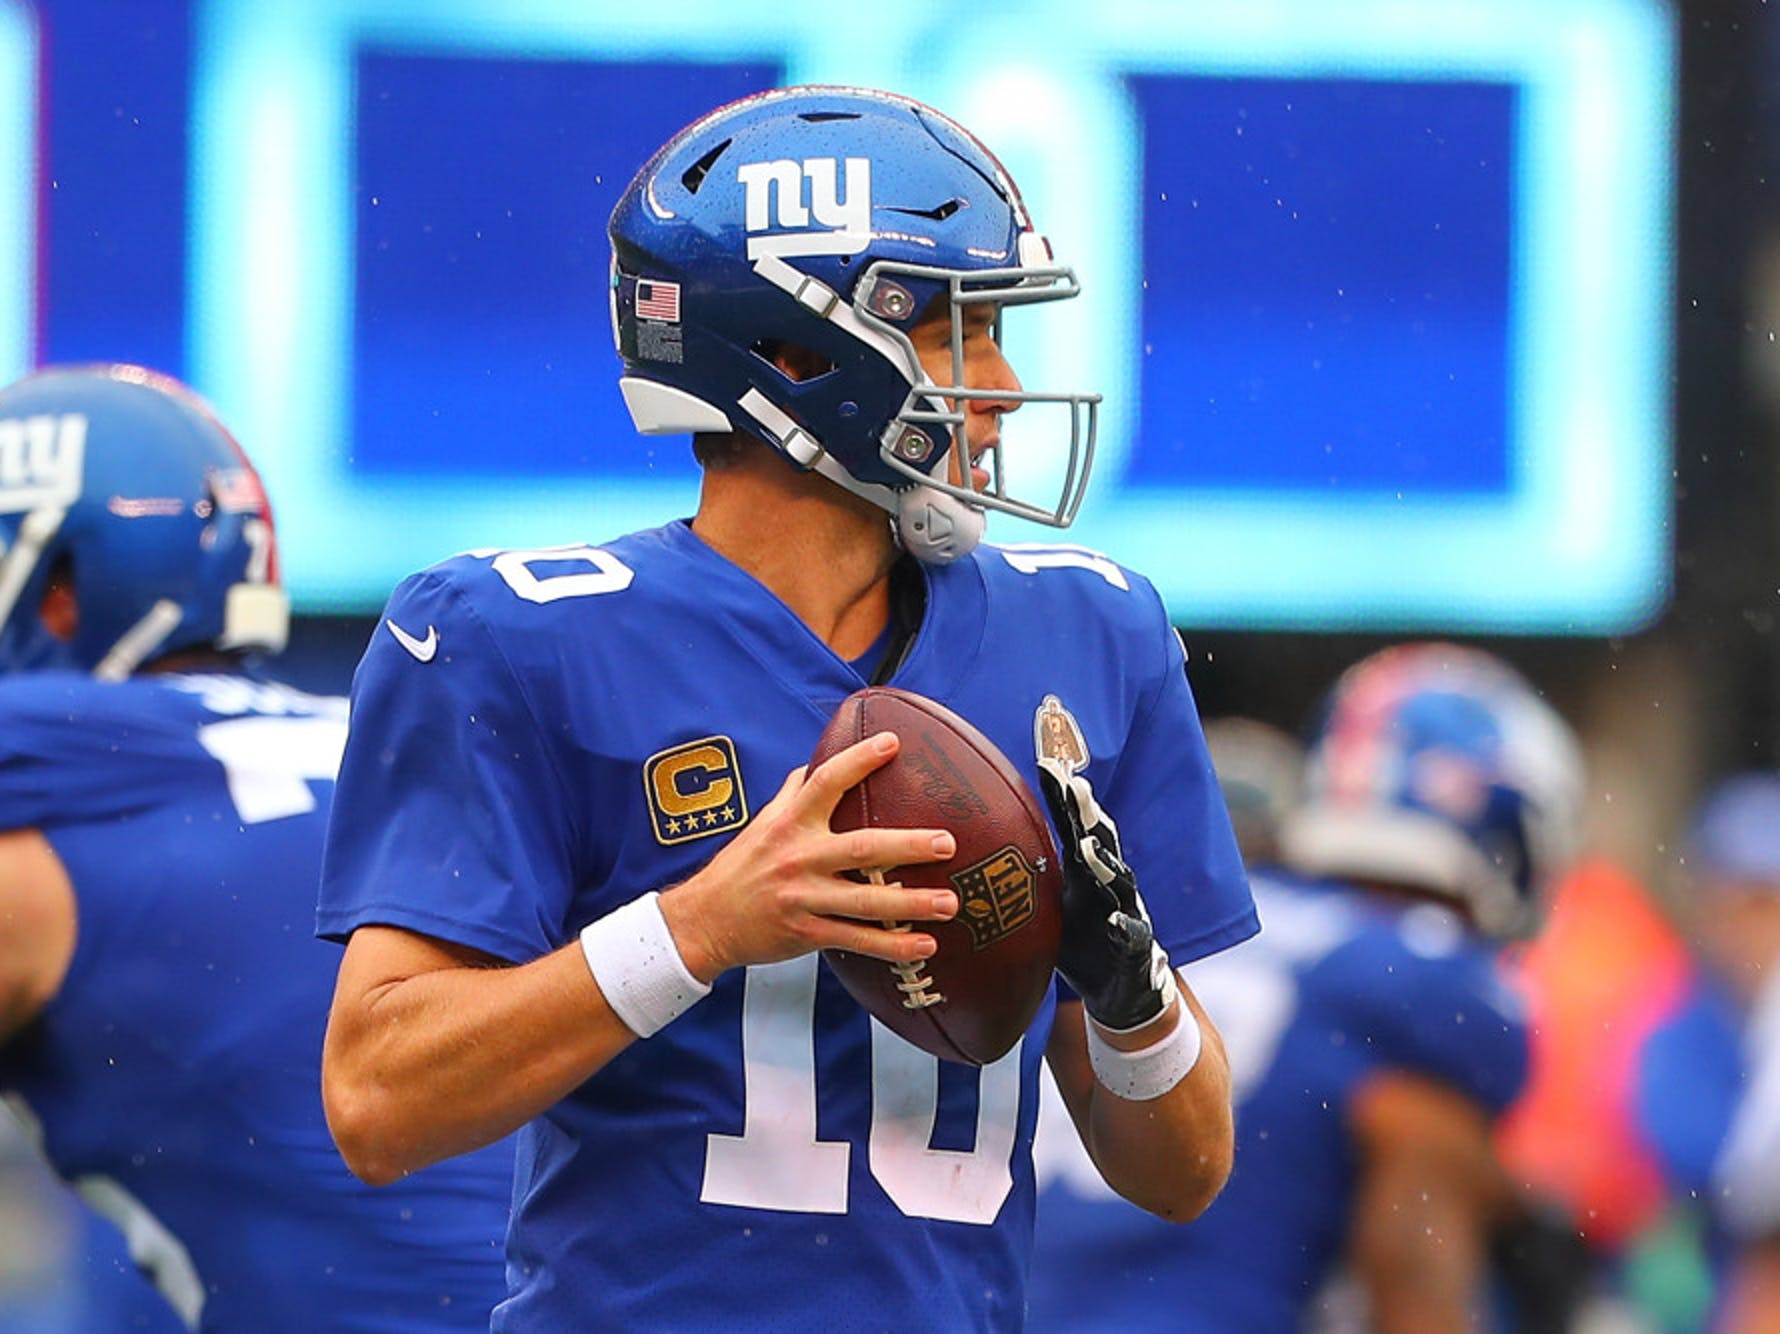 New York Giants quarterback Eli Manning (10) during the second quarter of the National Football League game between the New York Giants and the Jacksonville Jaguars on September 9, 2018 at MetLife Stadium in East Rutherford, NJ.